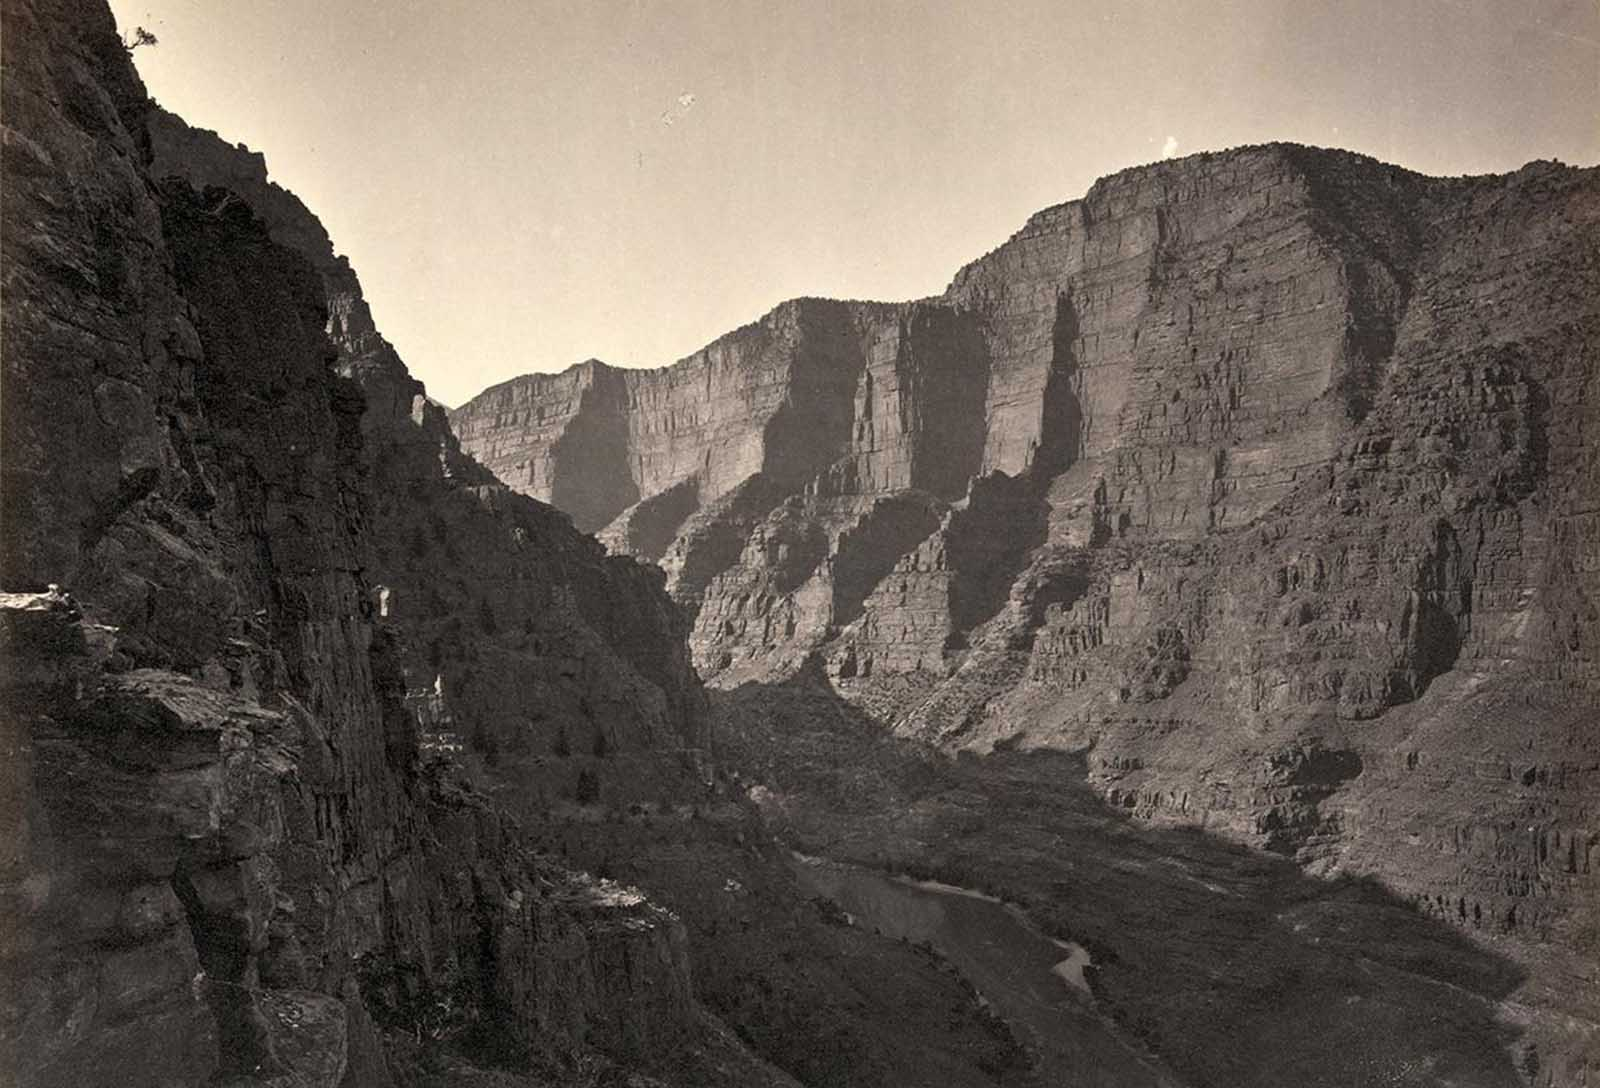 The Canyon of Lodore, Colorado, in 1872.